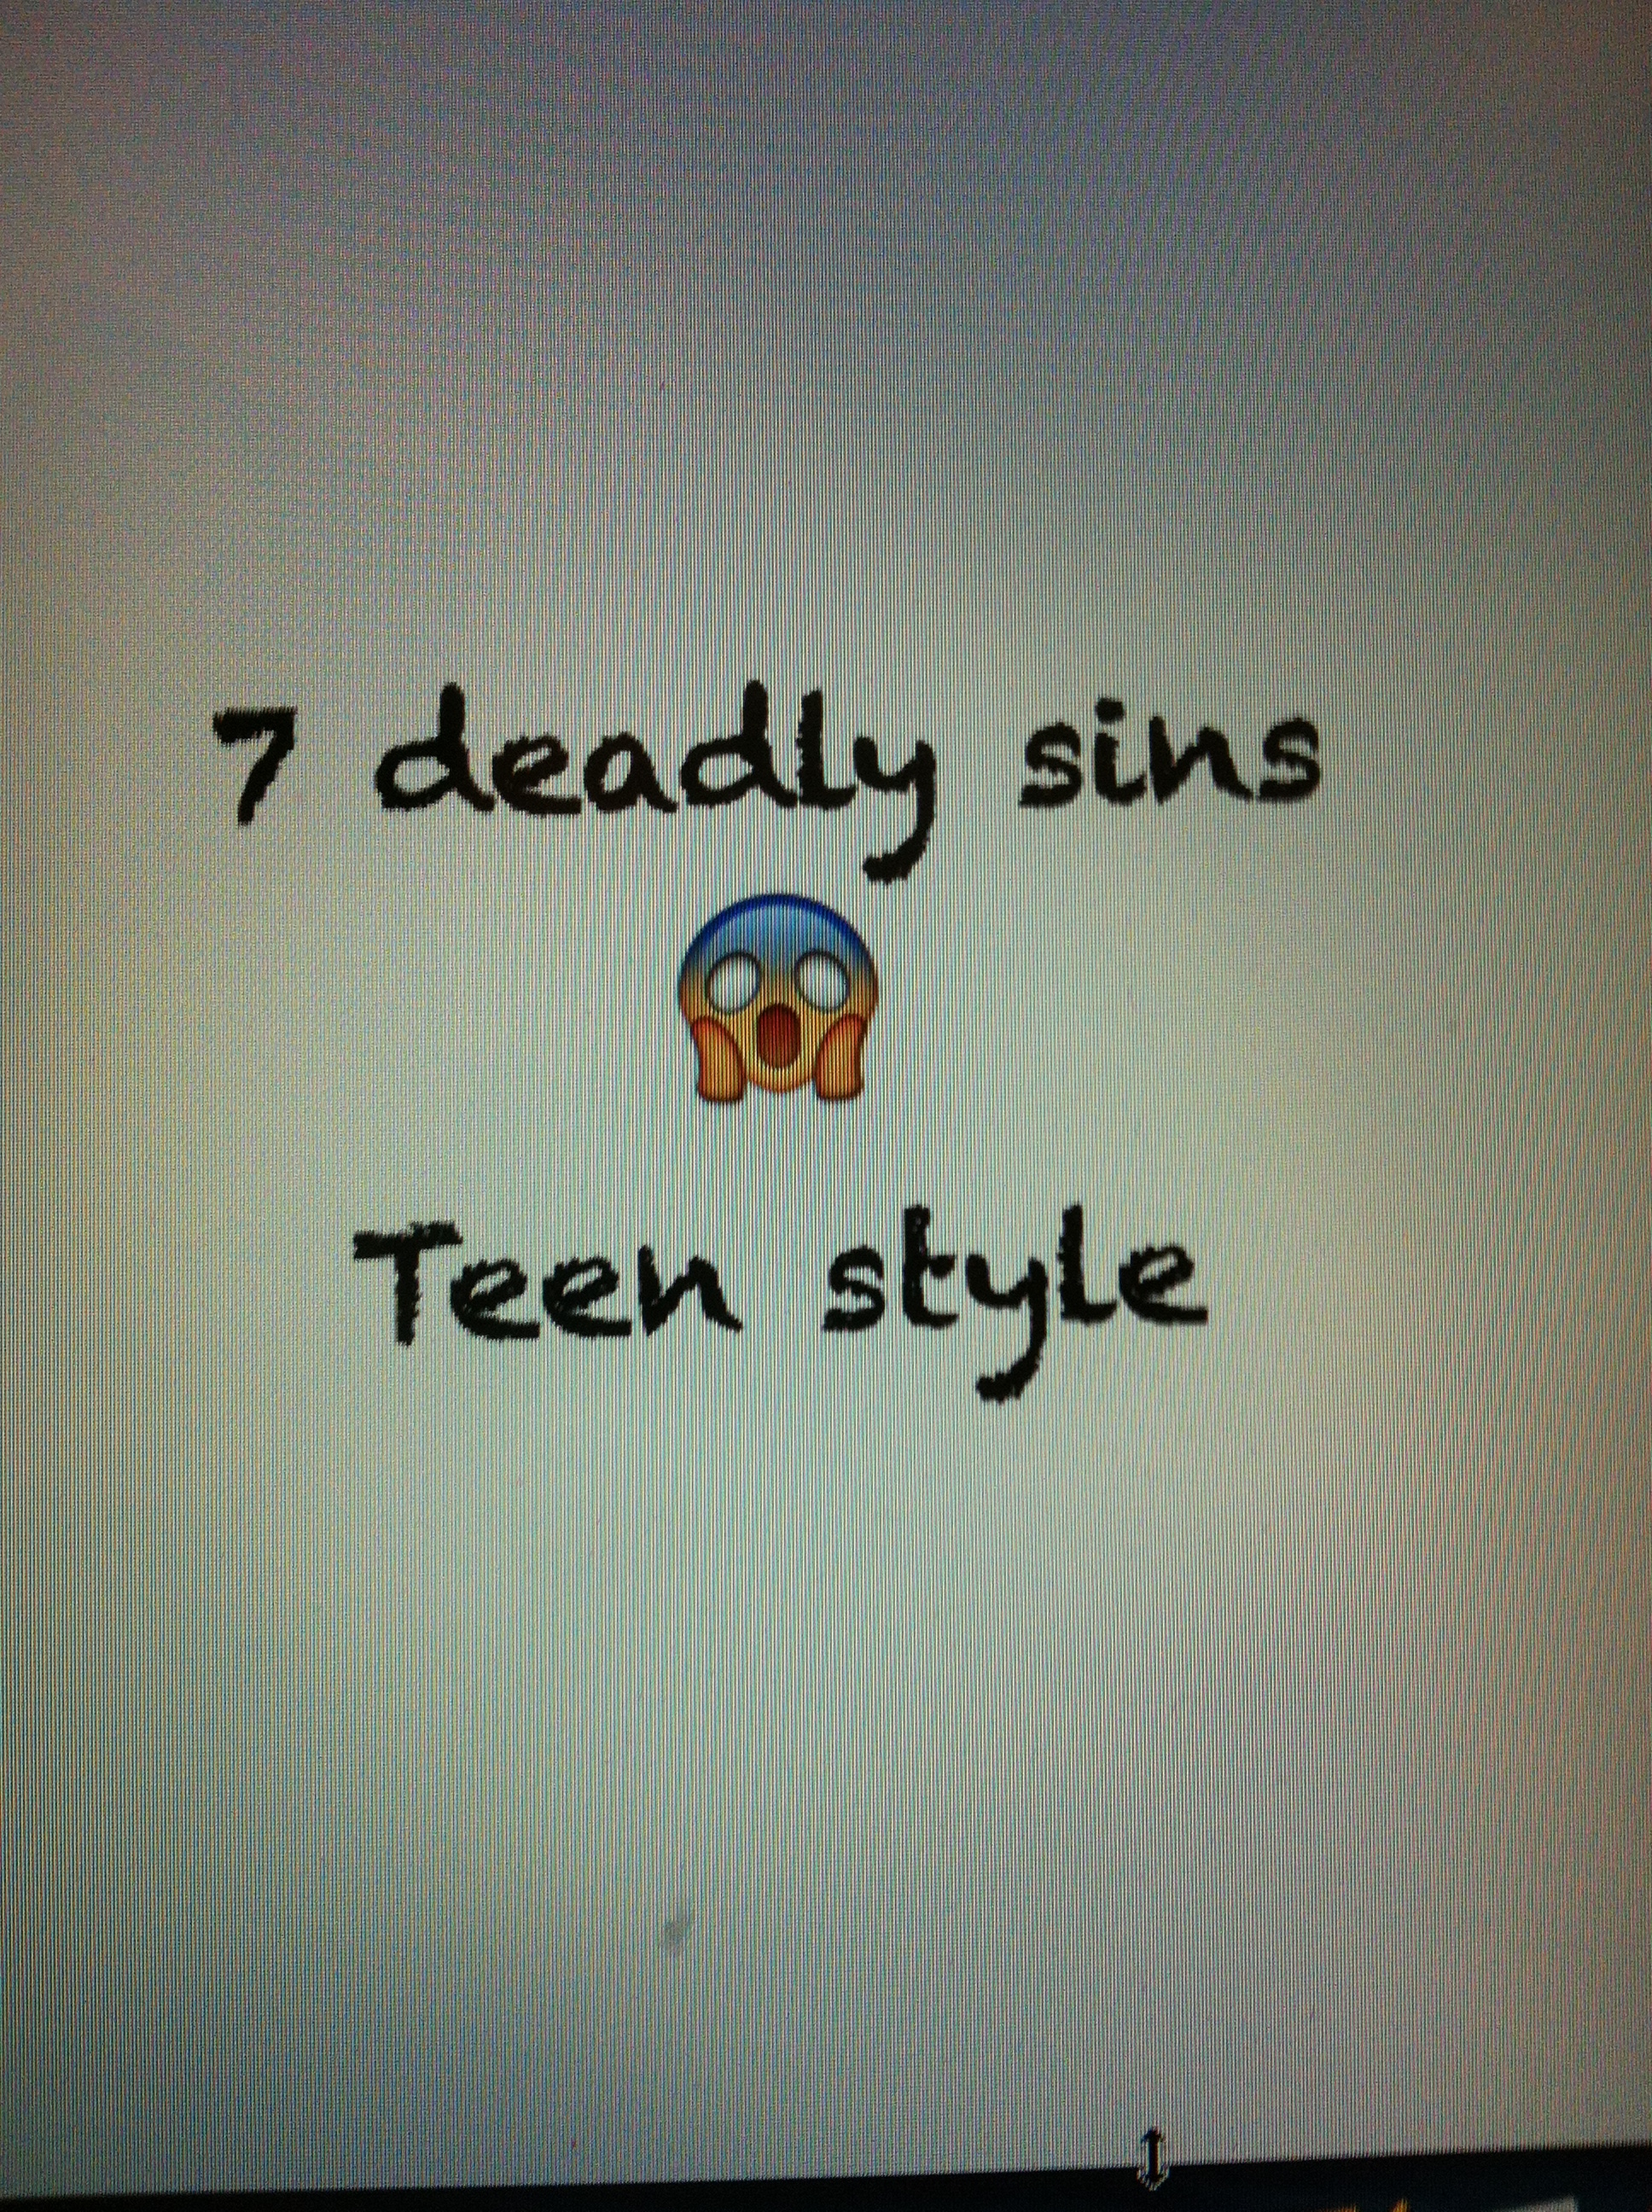 7 deadly sins, teen style, Photo by Wendy David-Gaines